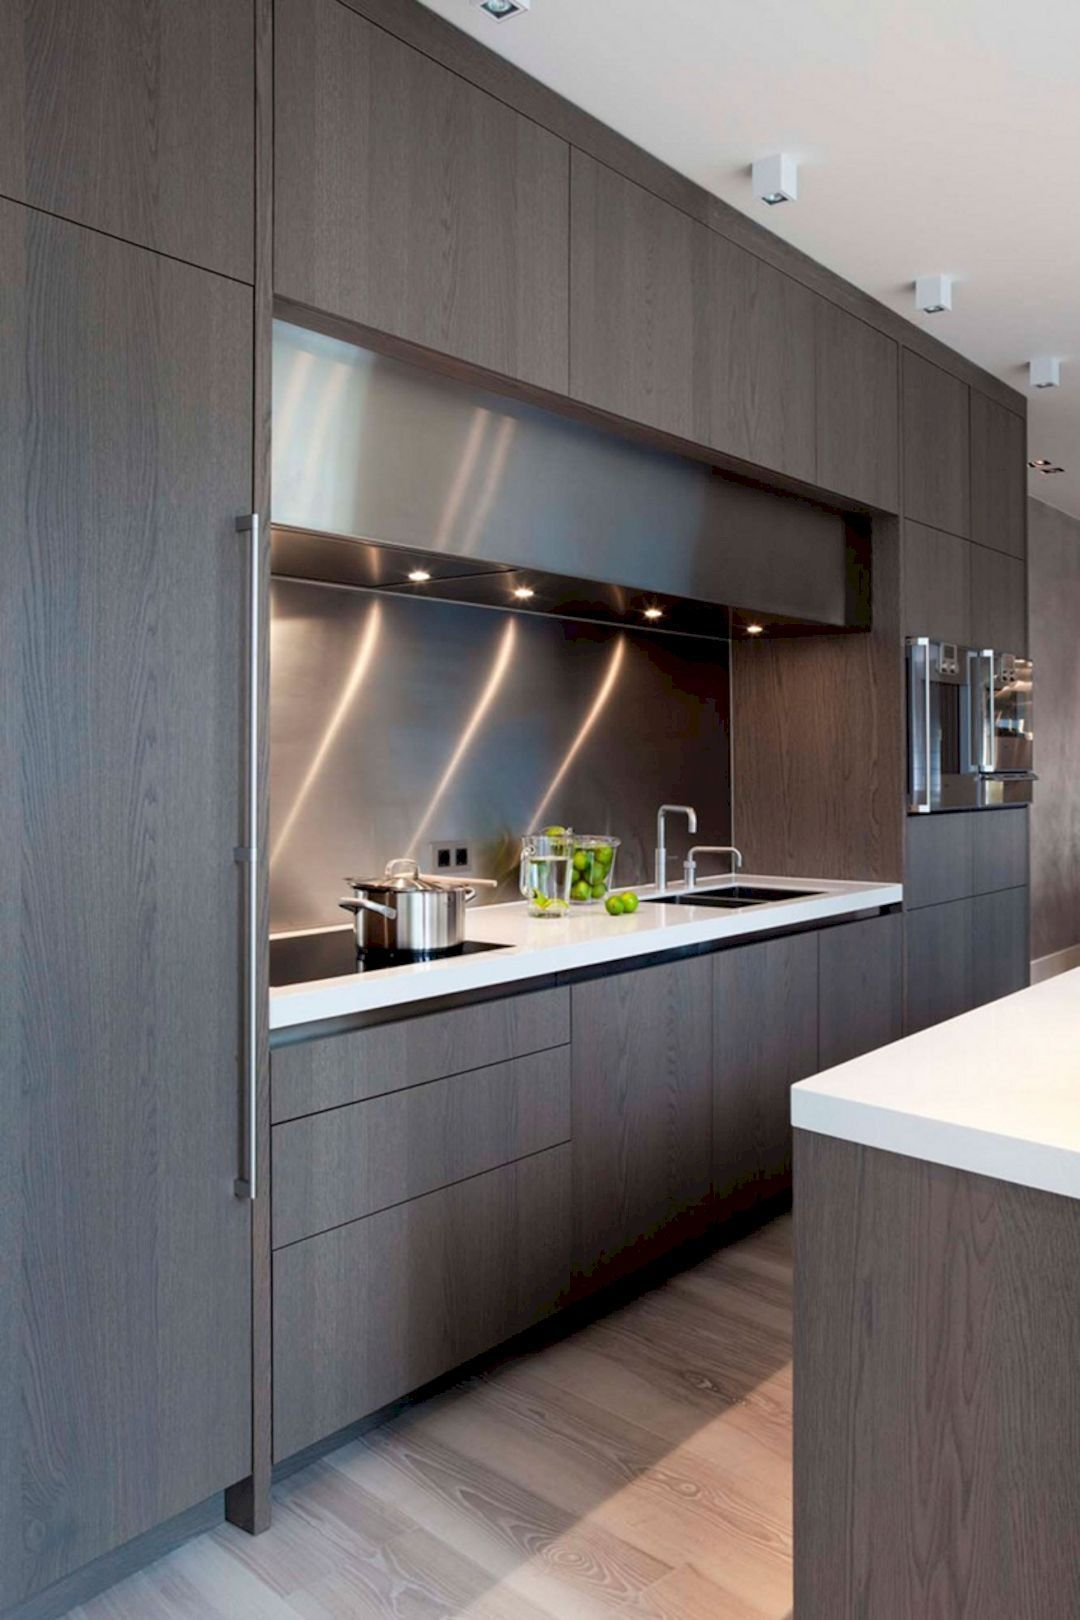 Top best kitchen designs u inspiration for your space get ideas